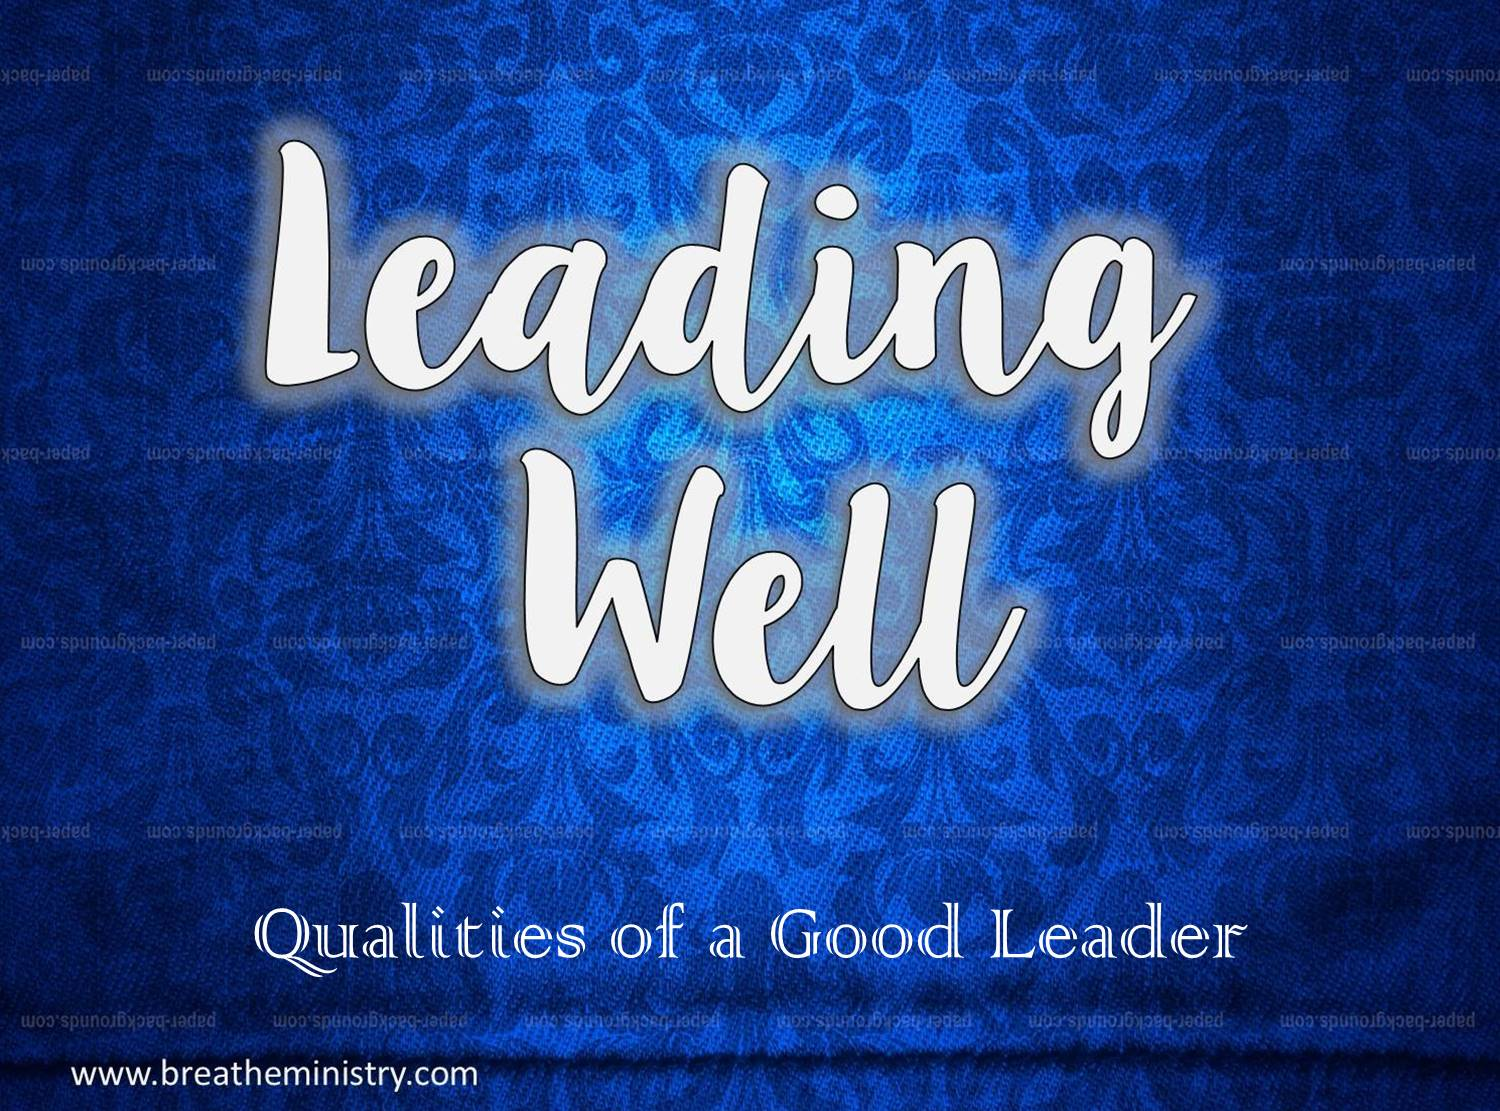 essay on qualities of a leader An undergraduate essay on leadership describing the qualities and characteristics of a good leader and models of leadership.